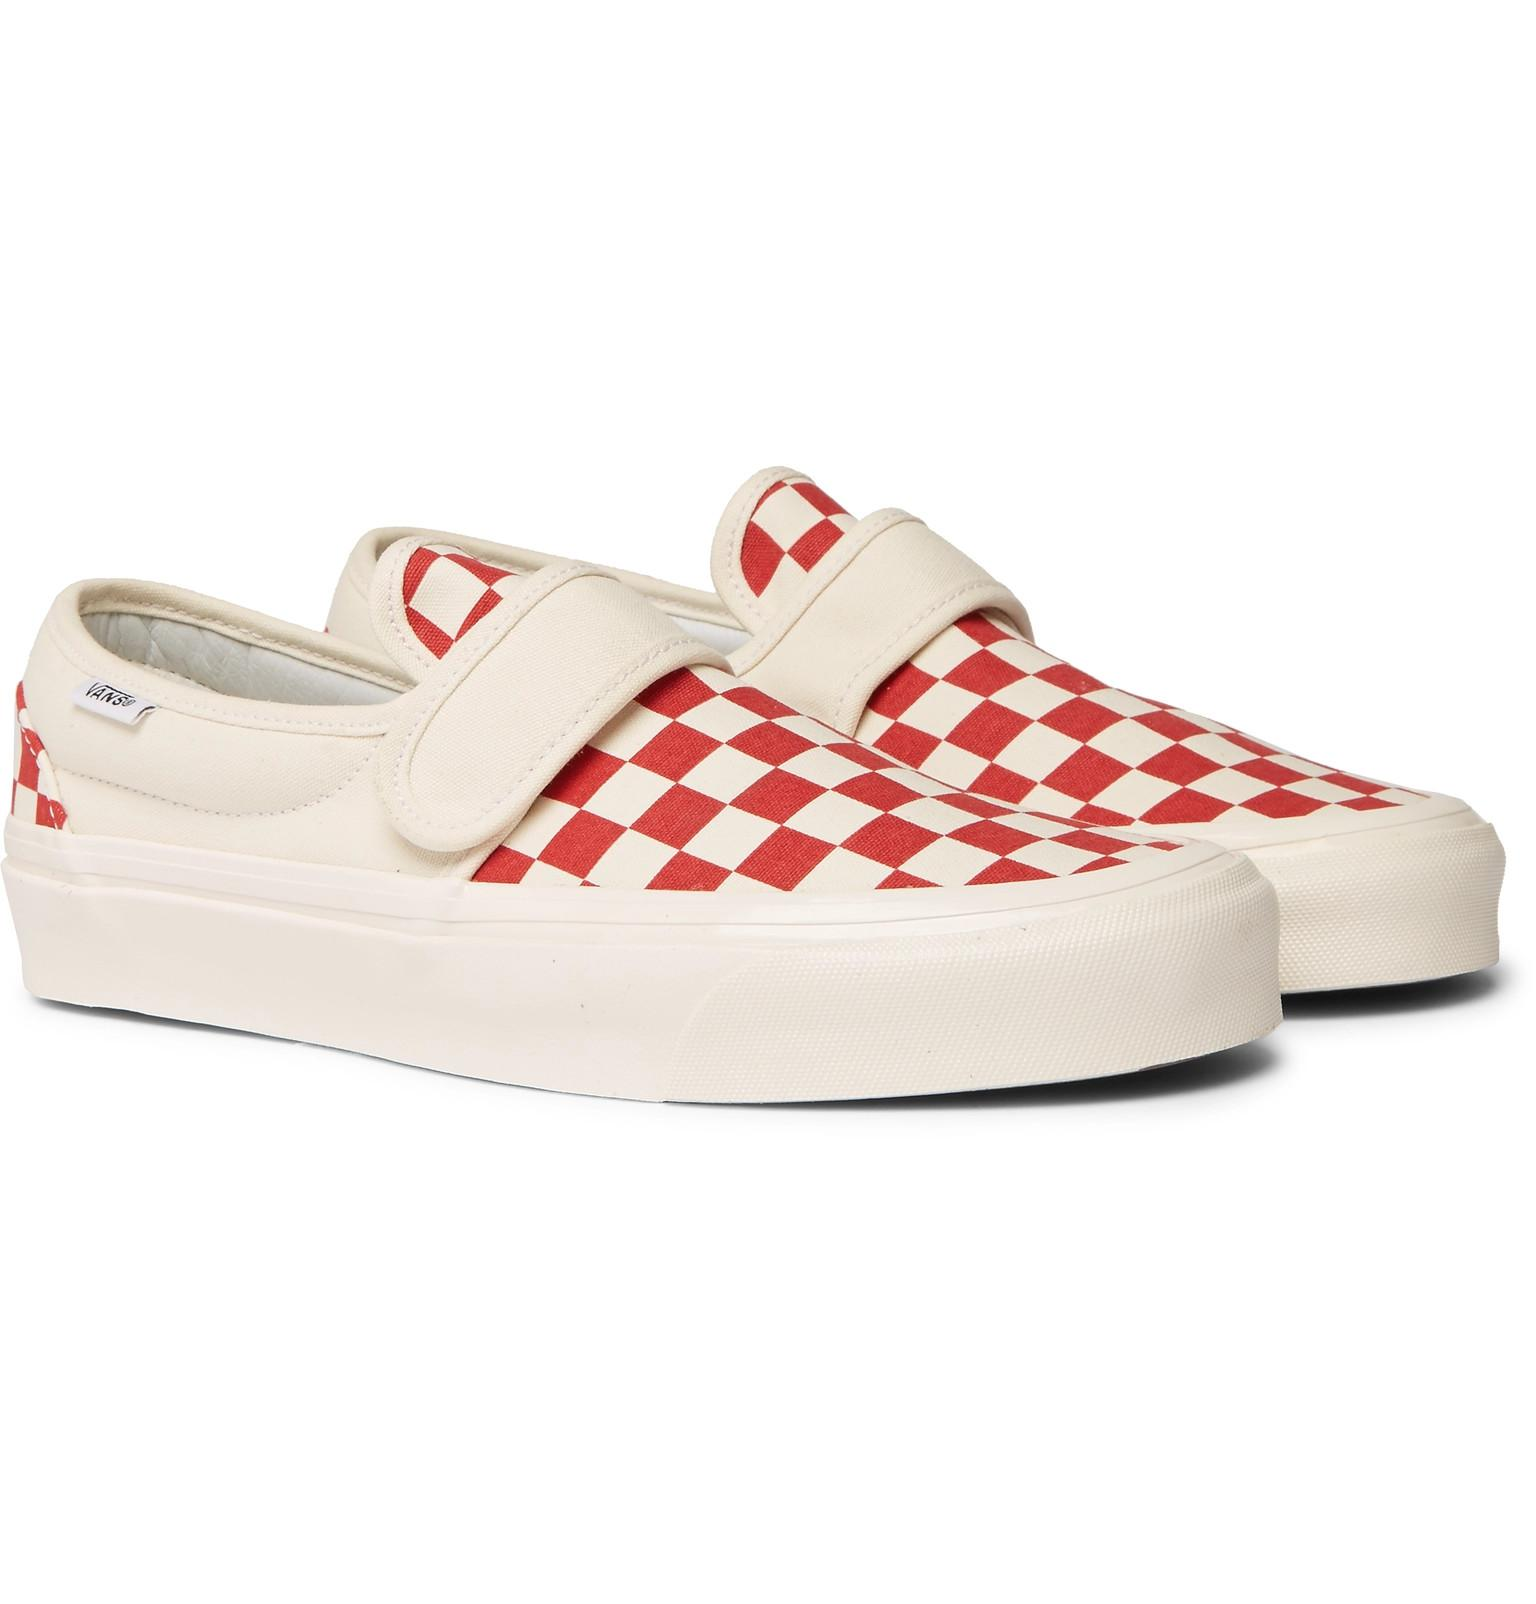 255f3eebfb2 Vans Anaheim Factory 47 V Dx Checkerboard Canvas Sneakers in Red for ...